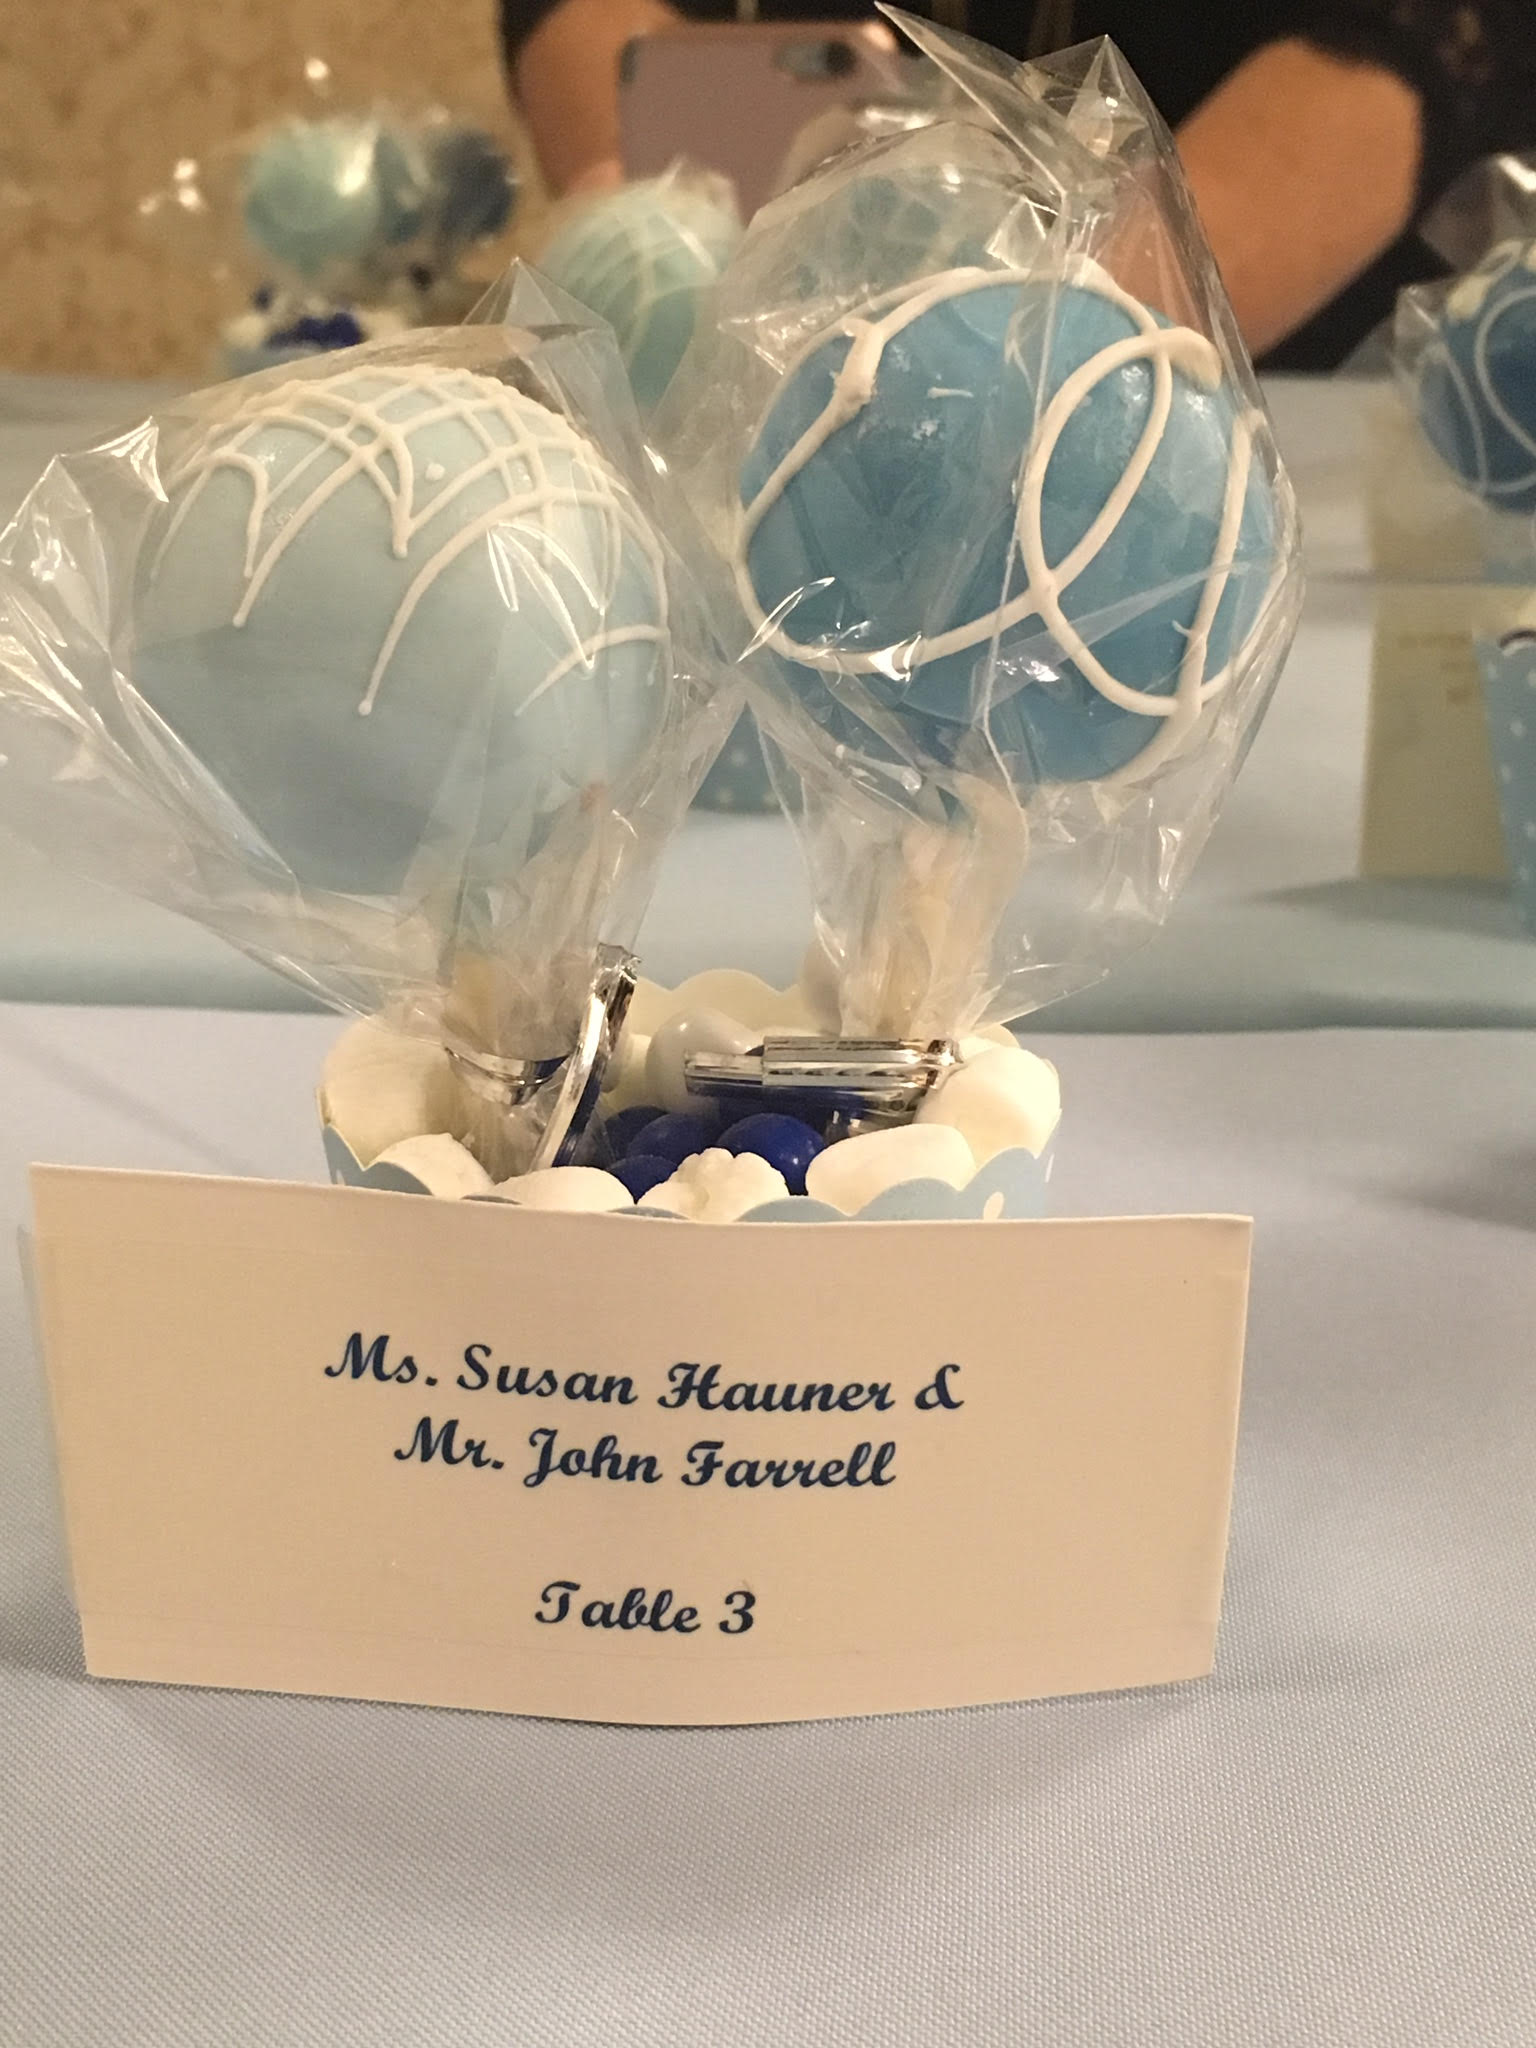 Cake Pop Table Placecards